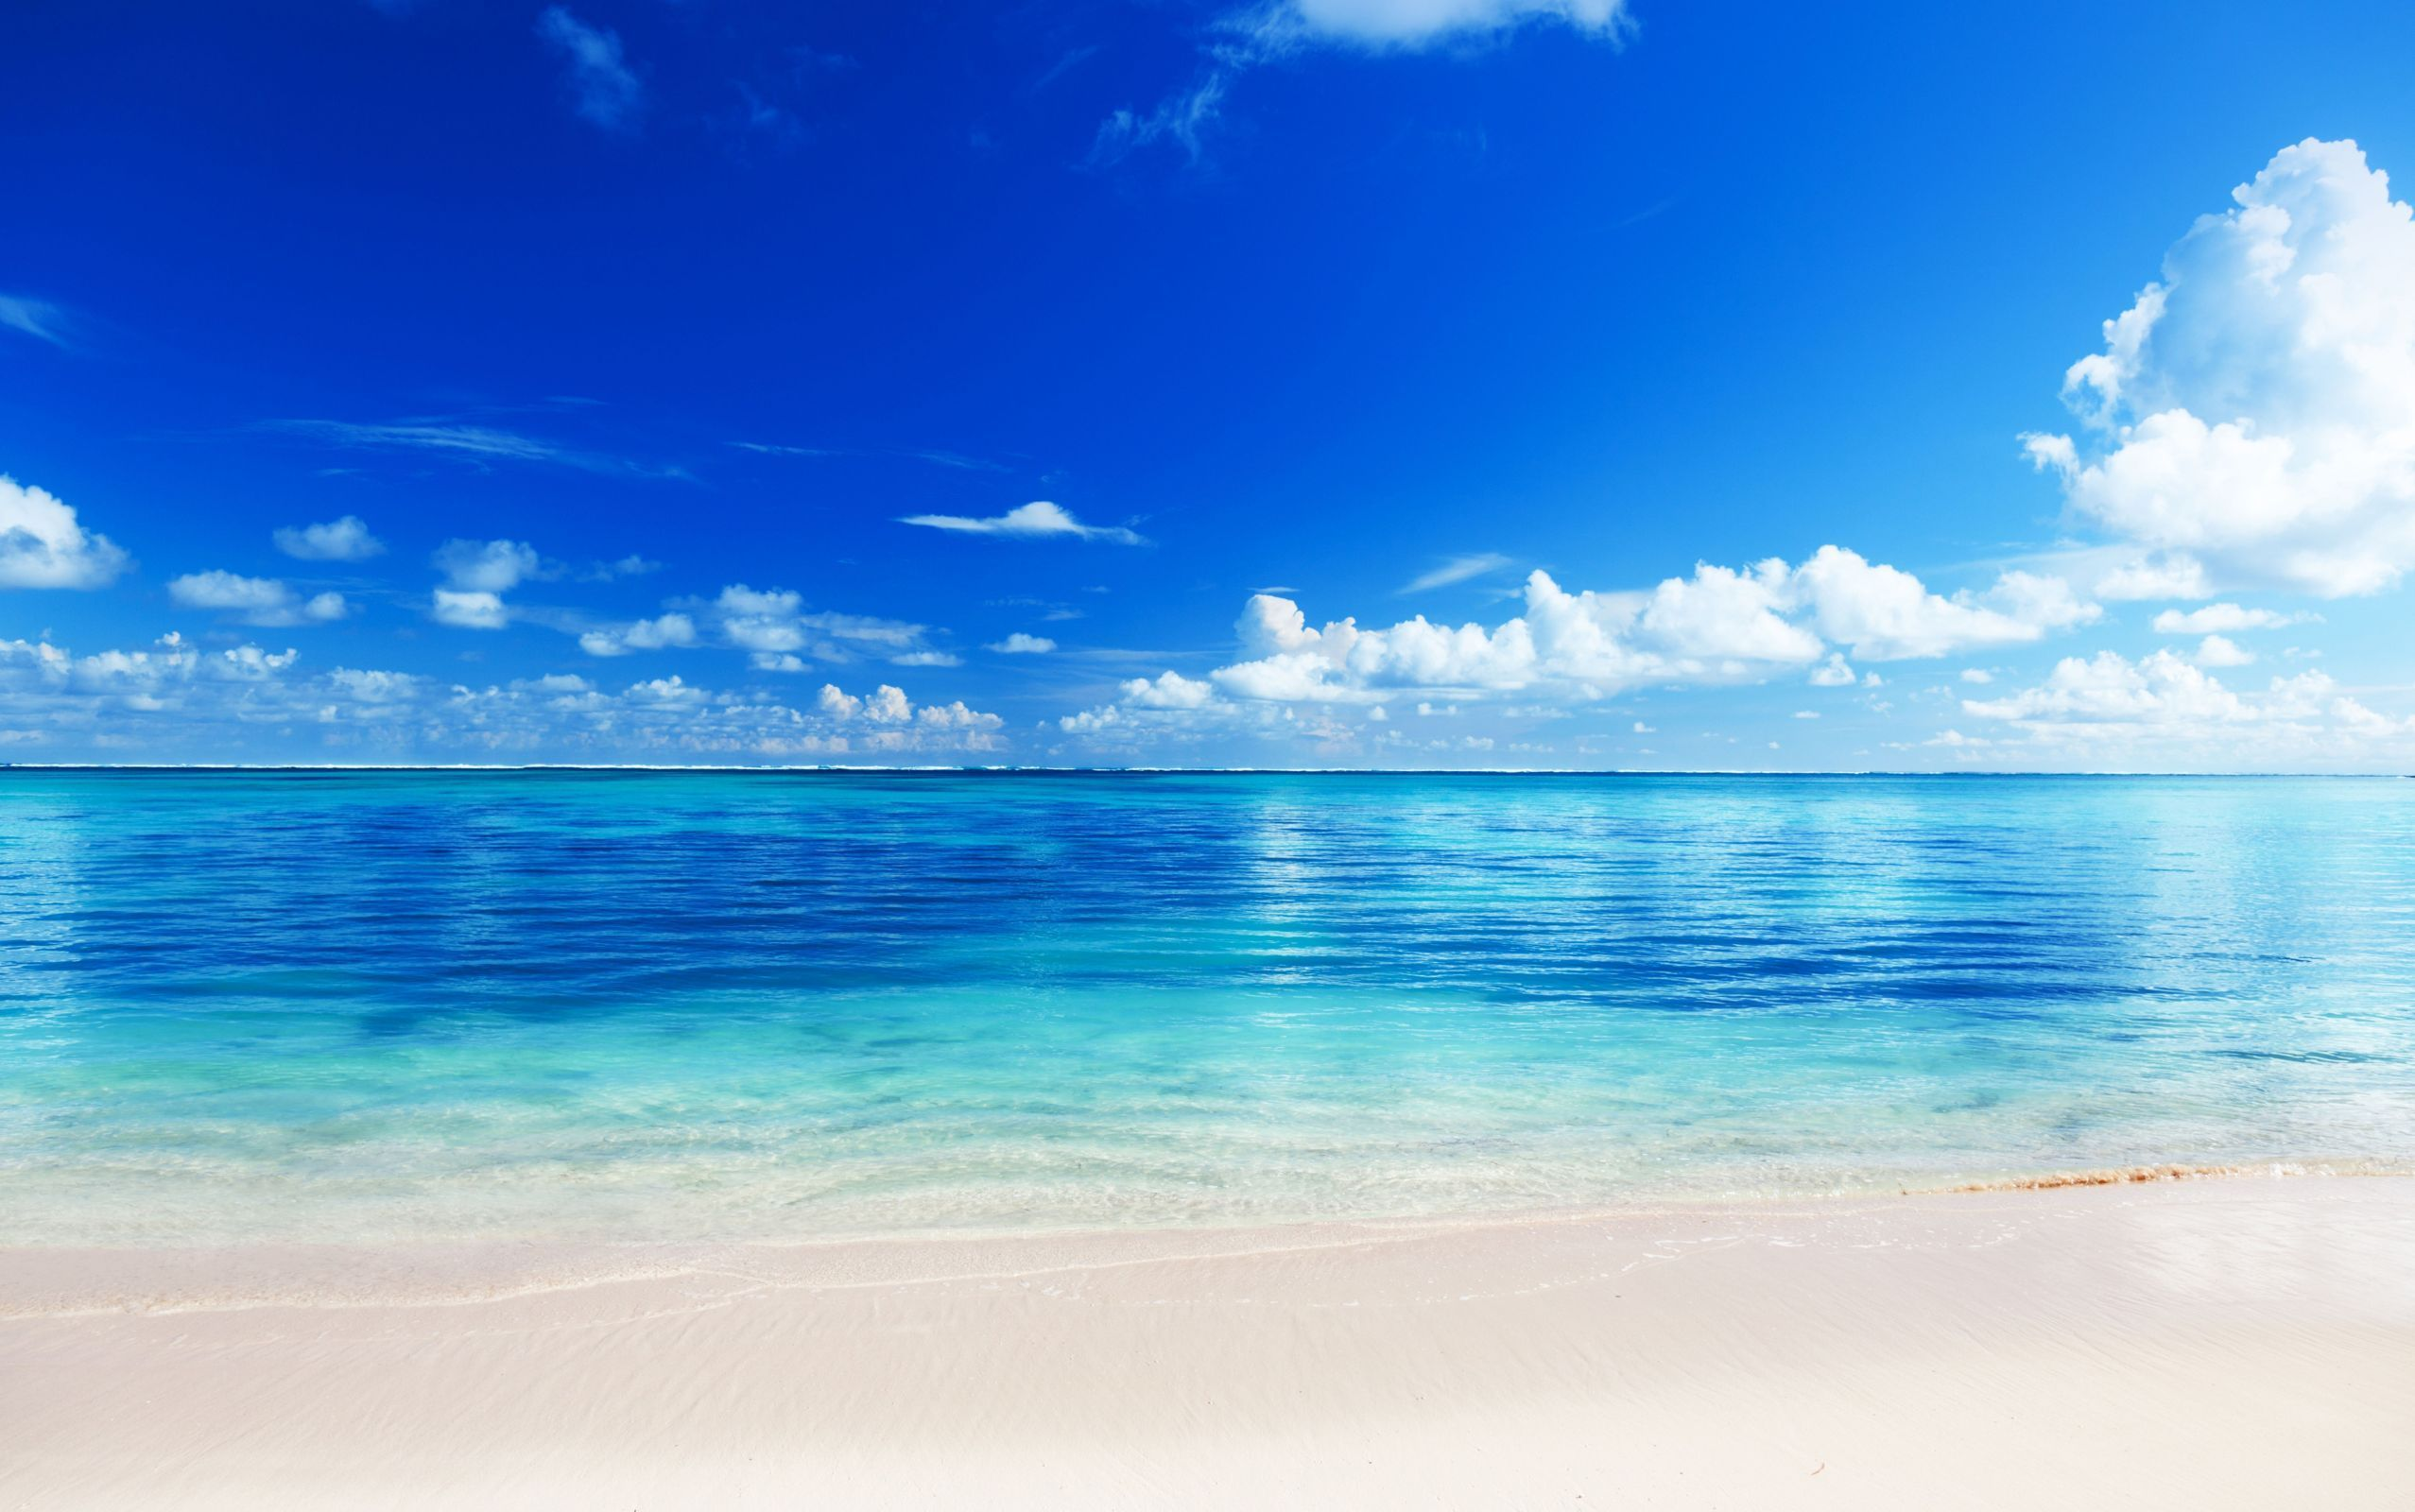 beach background 17574